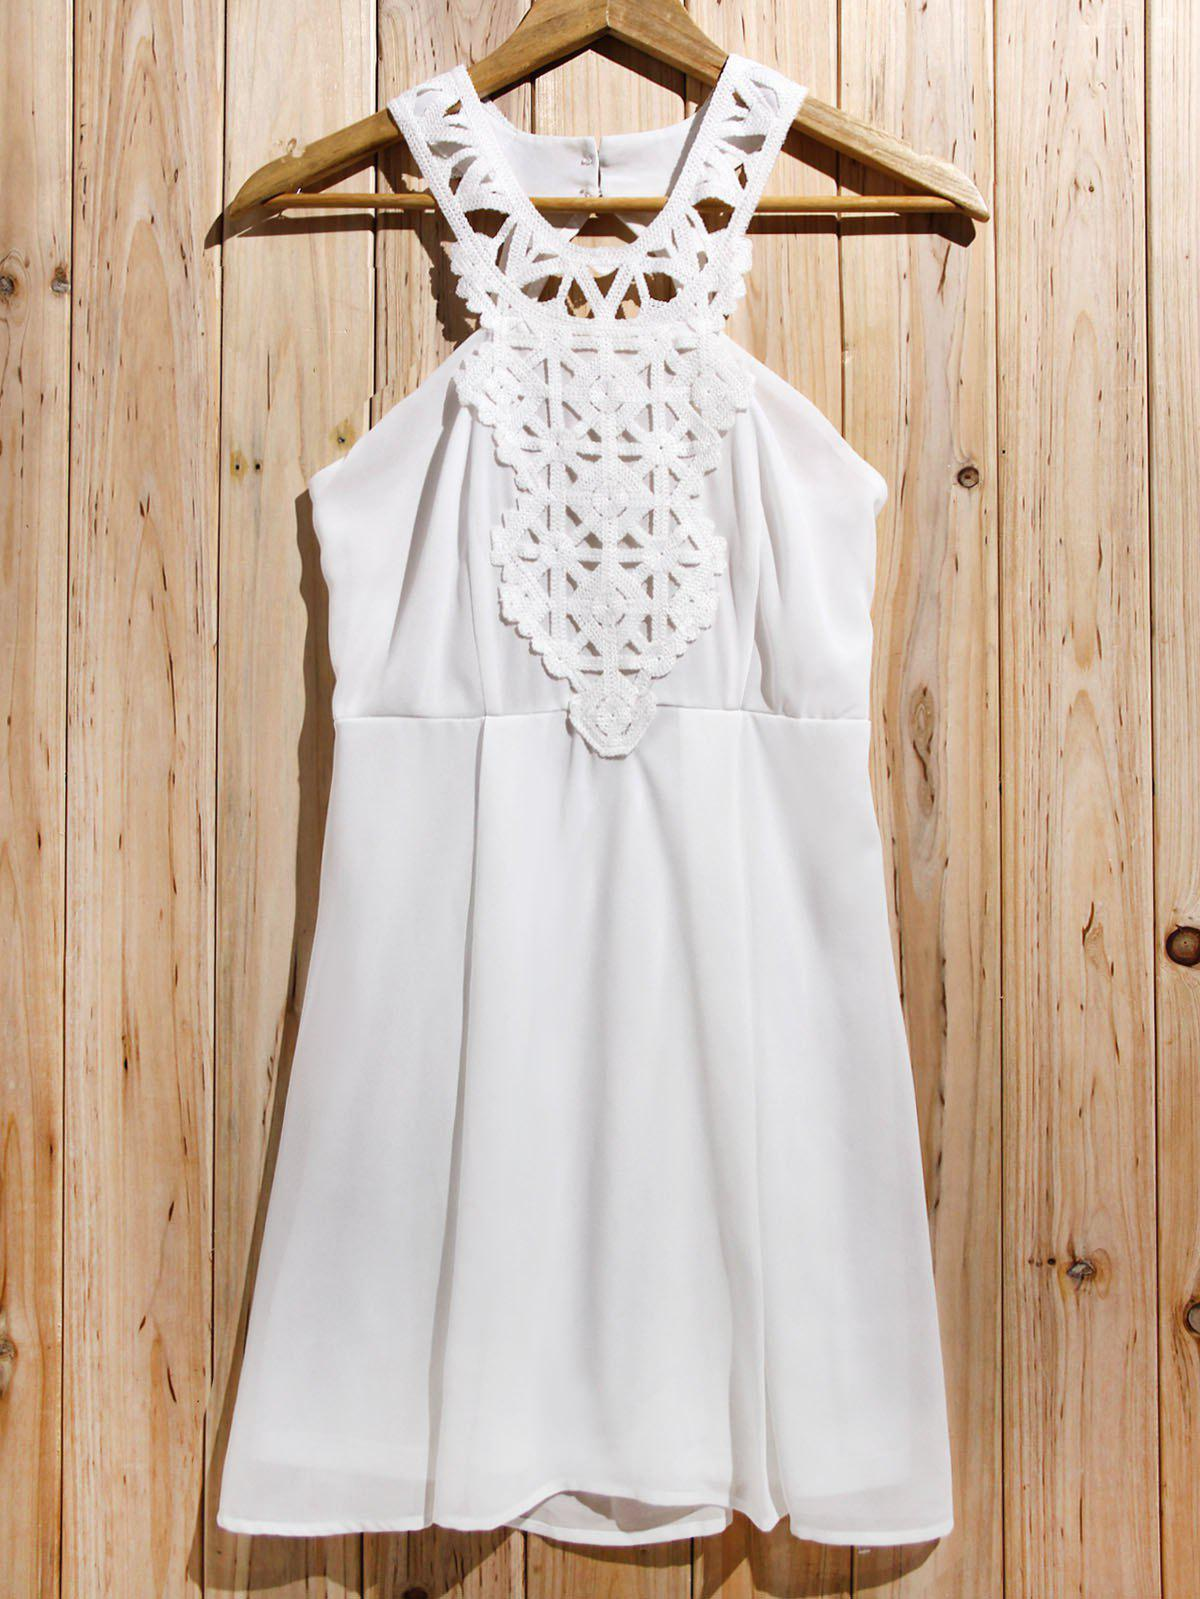 Trendy Backless Lace Splicing Sleeveless Cut Out Dress For Women - OFF WHITE S